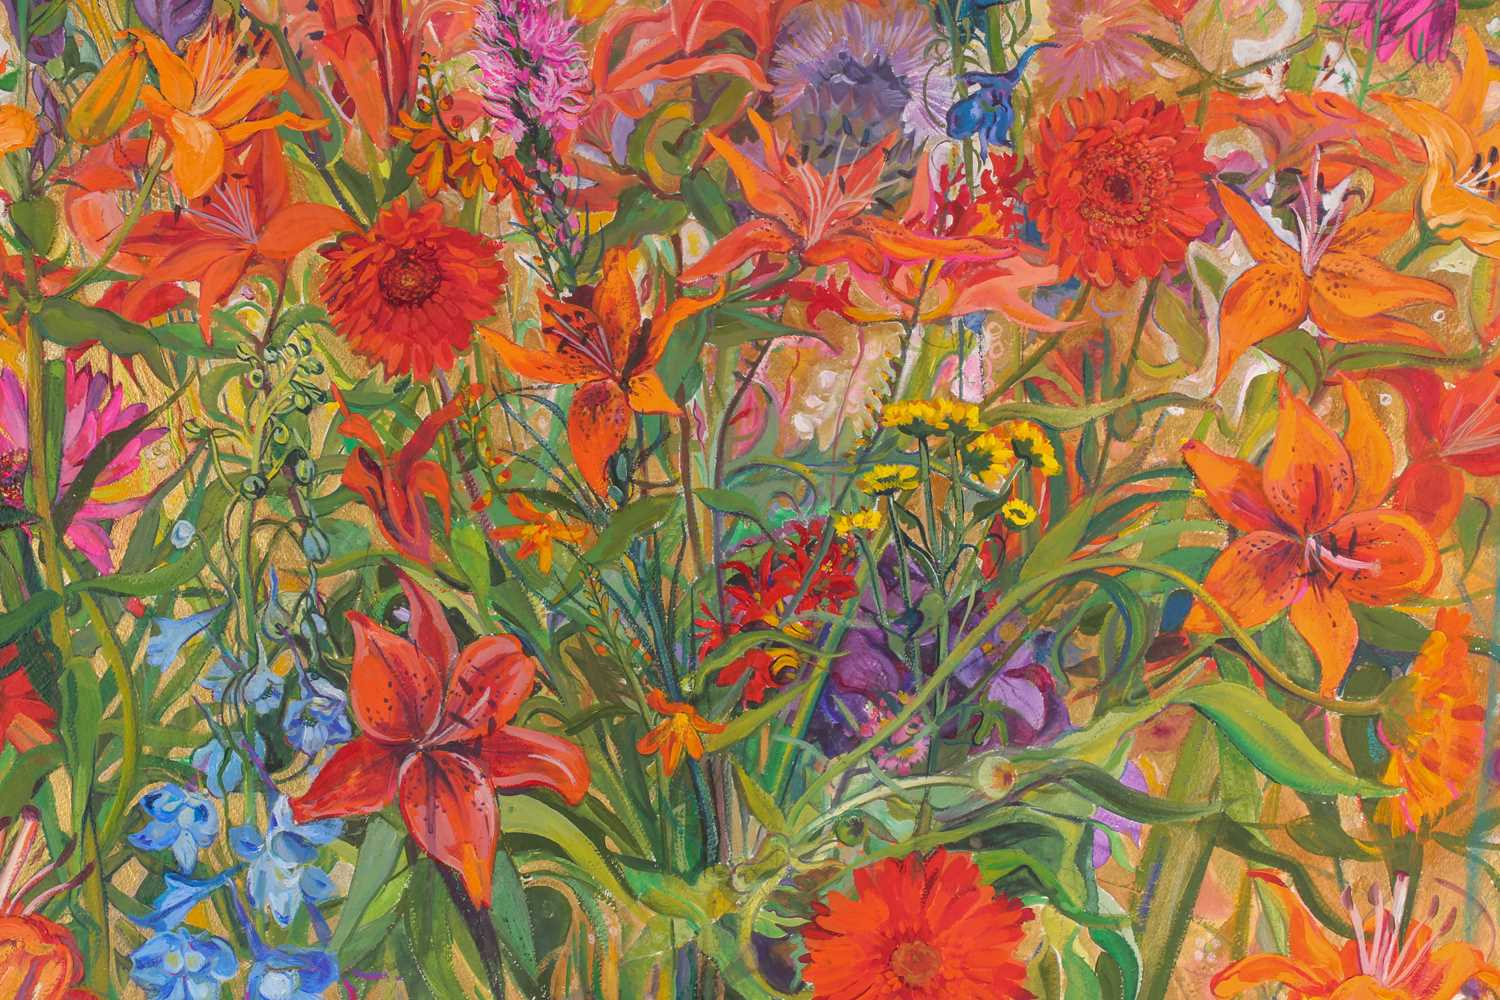 D Lindsay, English cottage garden, watercolour and gouache, signed and dated 99 lower right, 55 cm x - Image 3 of 4